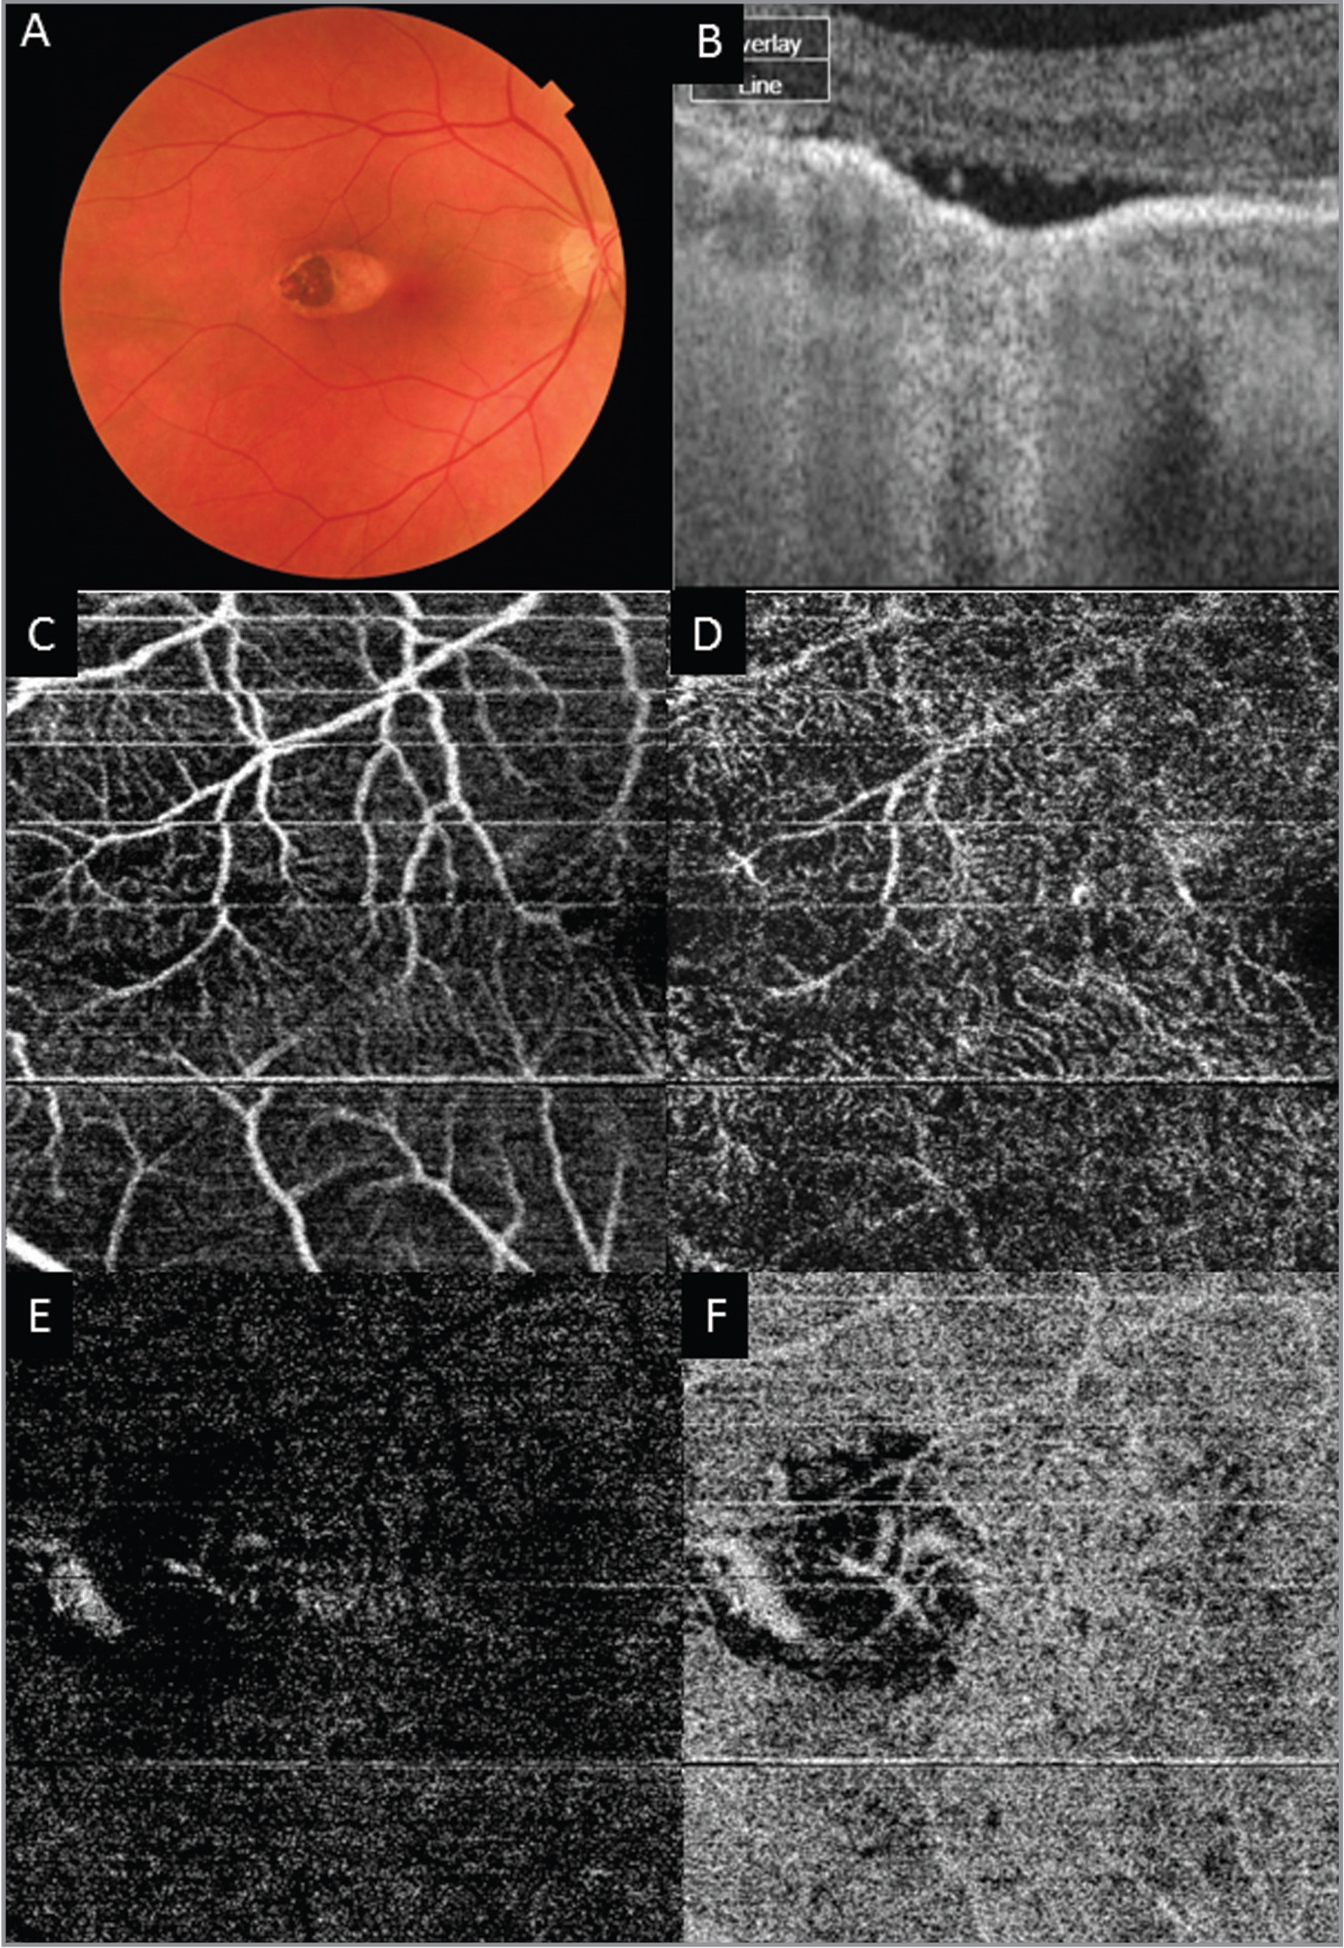 Imaging of torpedo lesion from Case 1. (A) Color fundus photo demonstrating typical appearance and location of torpedo lesion. (B) Optical coherence tomography (OCT) of torpedo lesion that shows outer retinal cavitation. (C) OCT angiography (OCTA) segment; superficial plexus of inner retina showing fine vessel loss at the site of the lesion. (D) OCTA segment; deep plexus of inner retina showing fine vessel loss at the site of the lesion. (E) OCTA segment; outer retina demonstrating visibility of the larger choroidal vessels at lesion site. (F) OCTA segment; choriocapillaris demonstrating visibility of the larger choroidal vessels at lesion site.